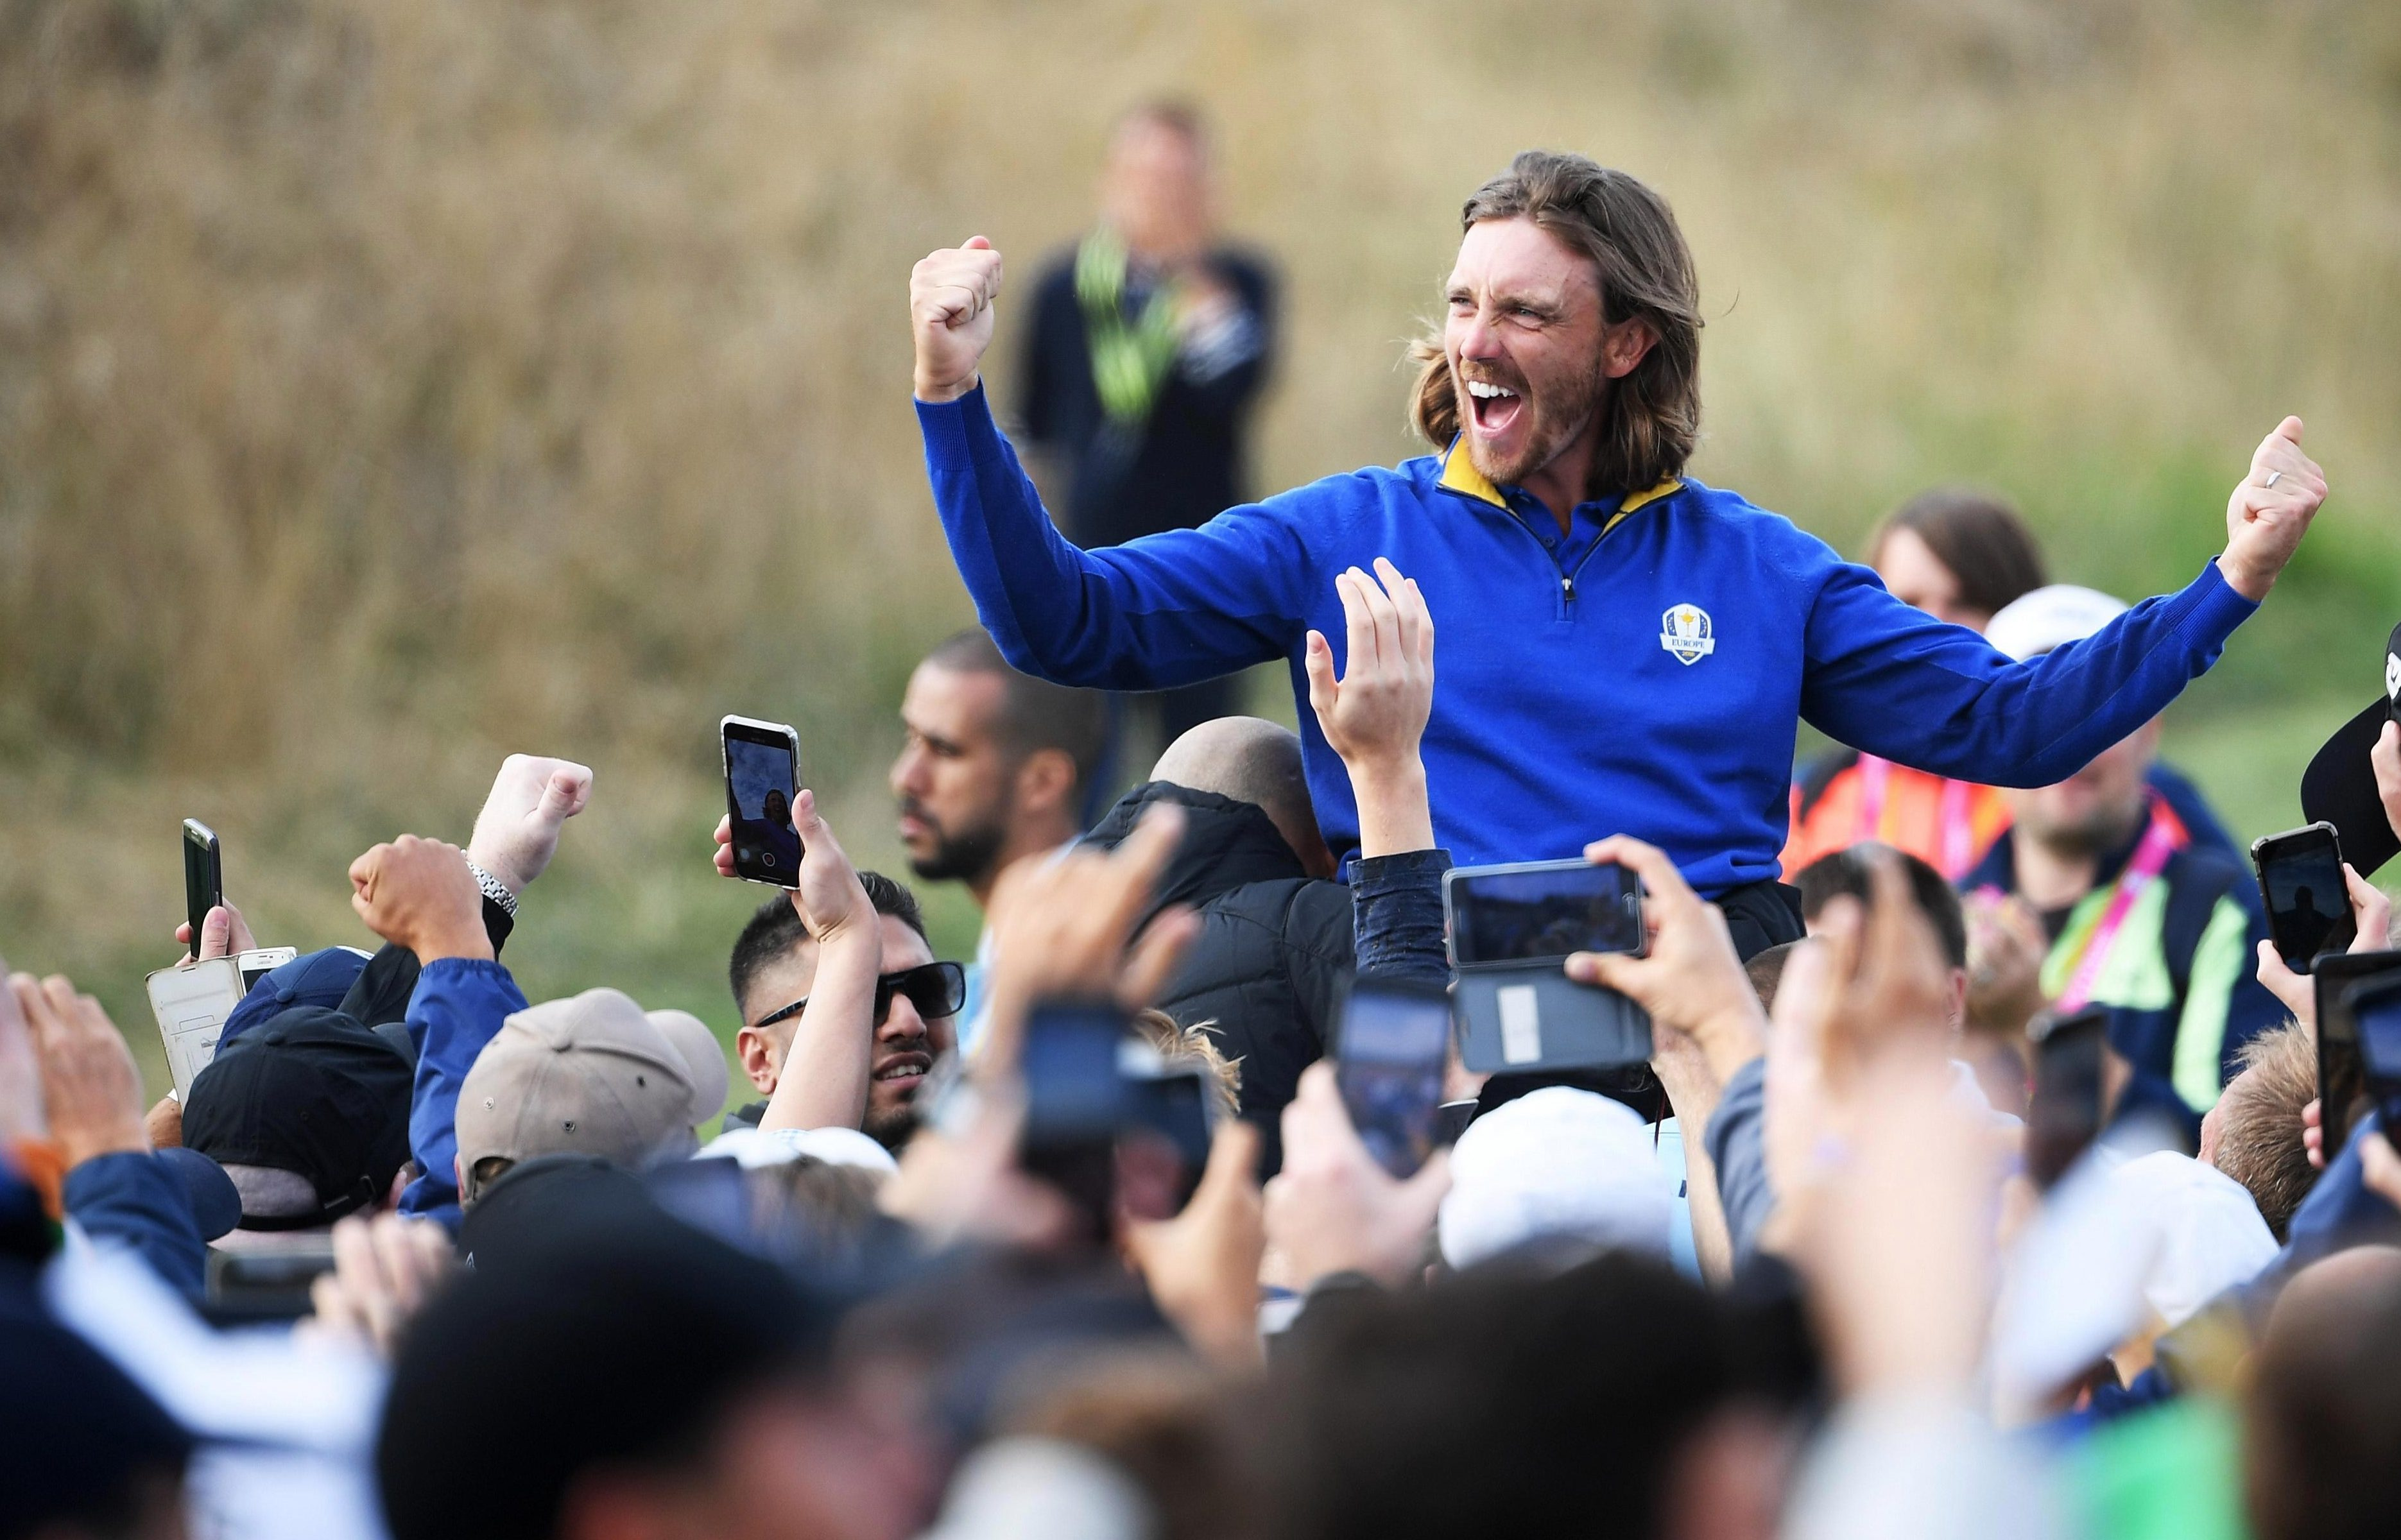 Tommy Fleetwood got carried away with his celebrations despite being thumped in his singles match after Europe's win